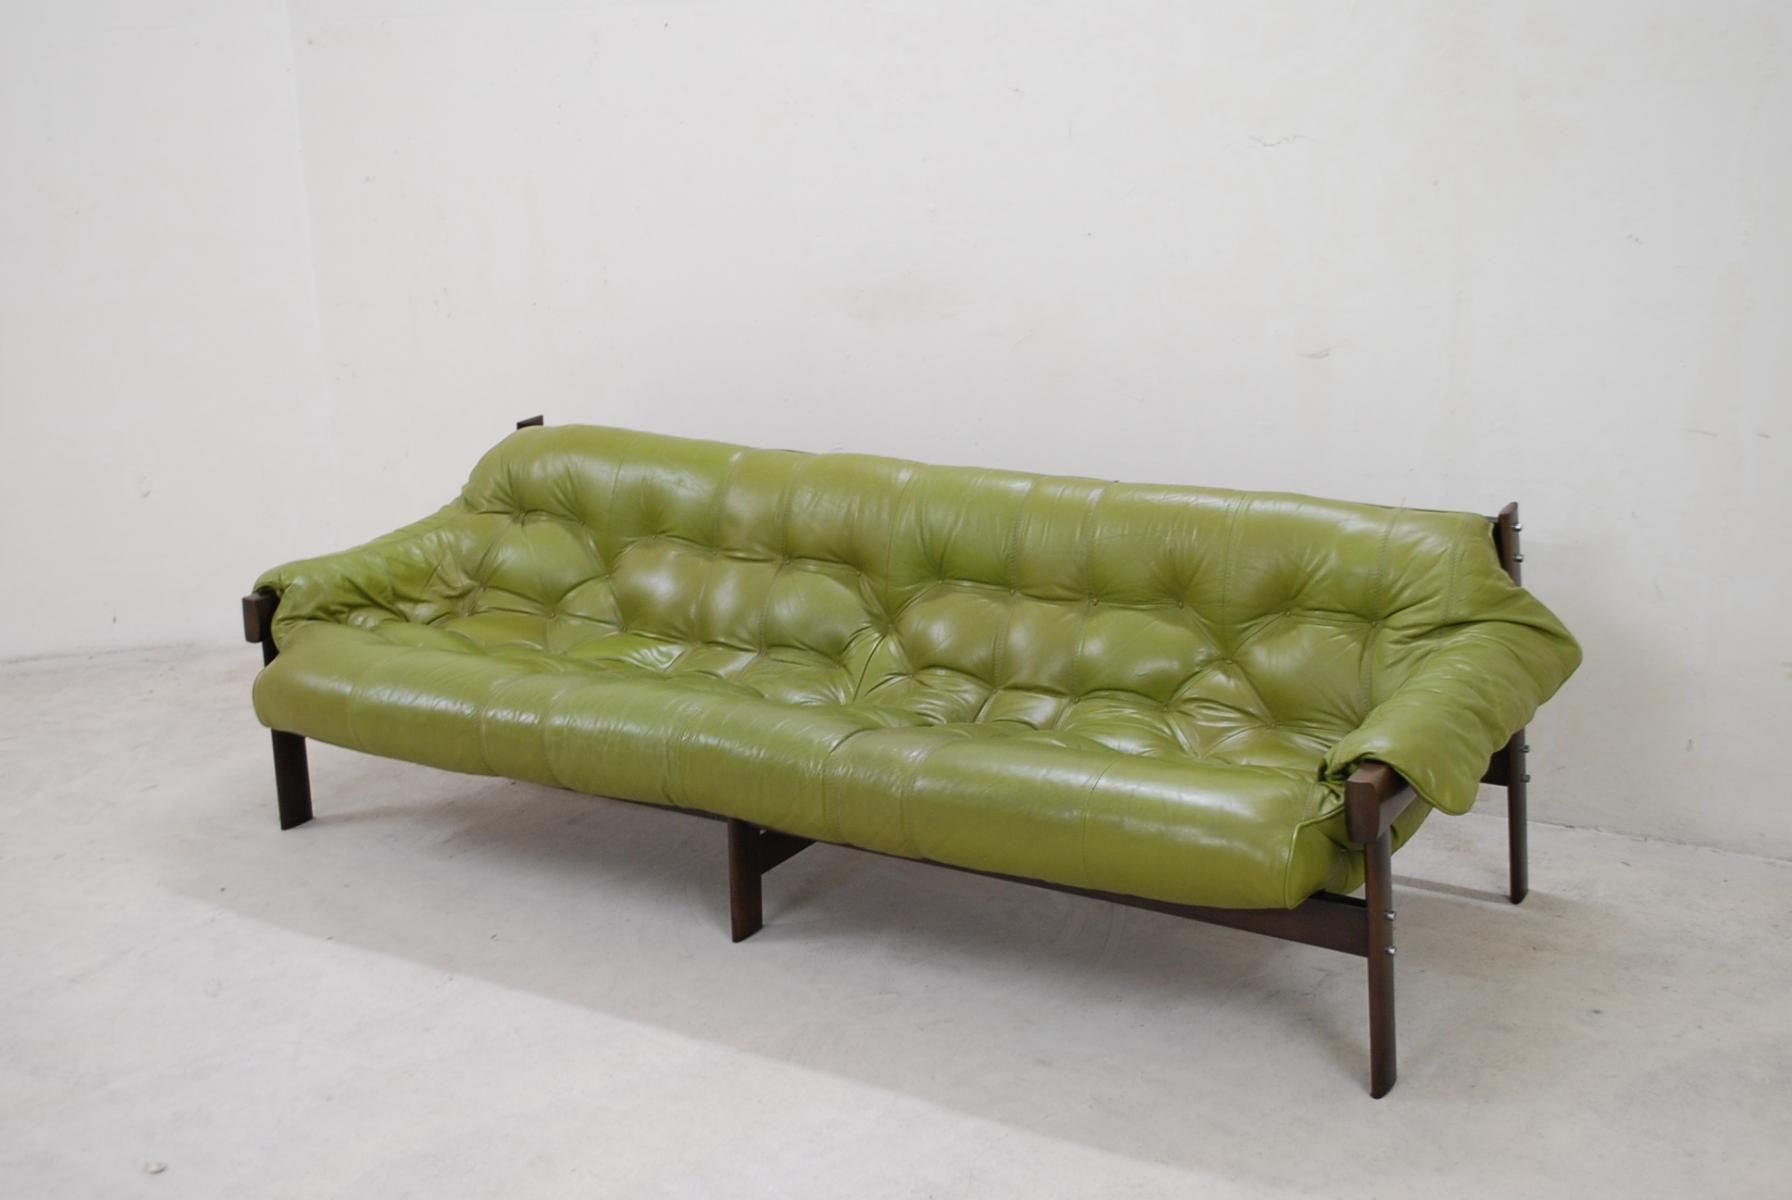 Surprising Model Mp 041 Lime Green Leather Sofa From Percival Lafer Download Free Architecture Designs Scobabritishbridgeorg